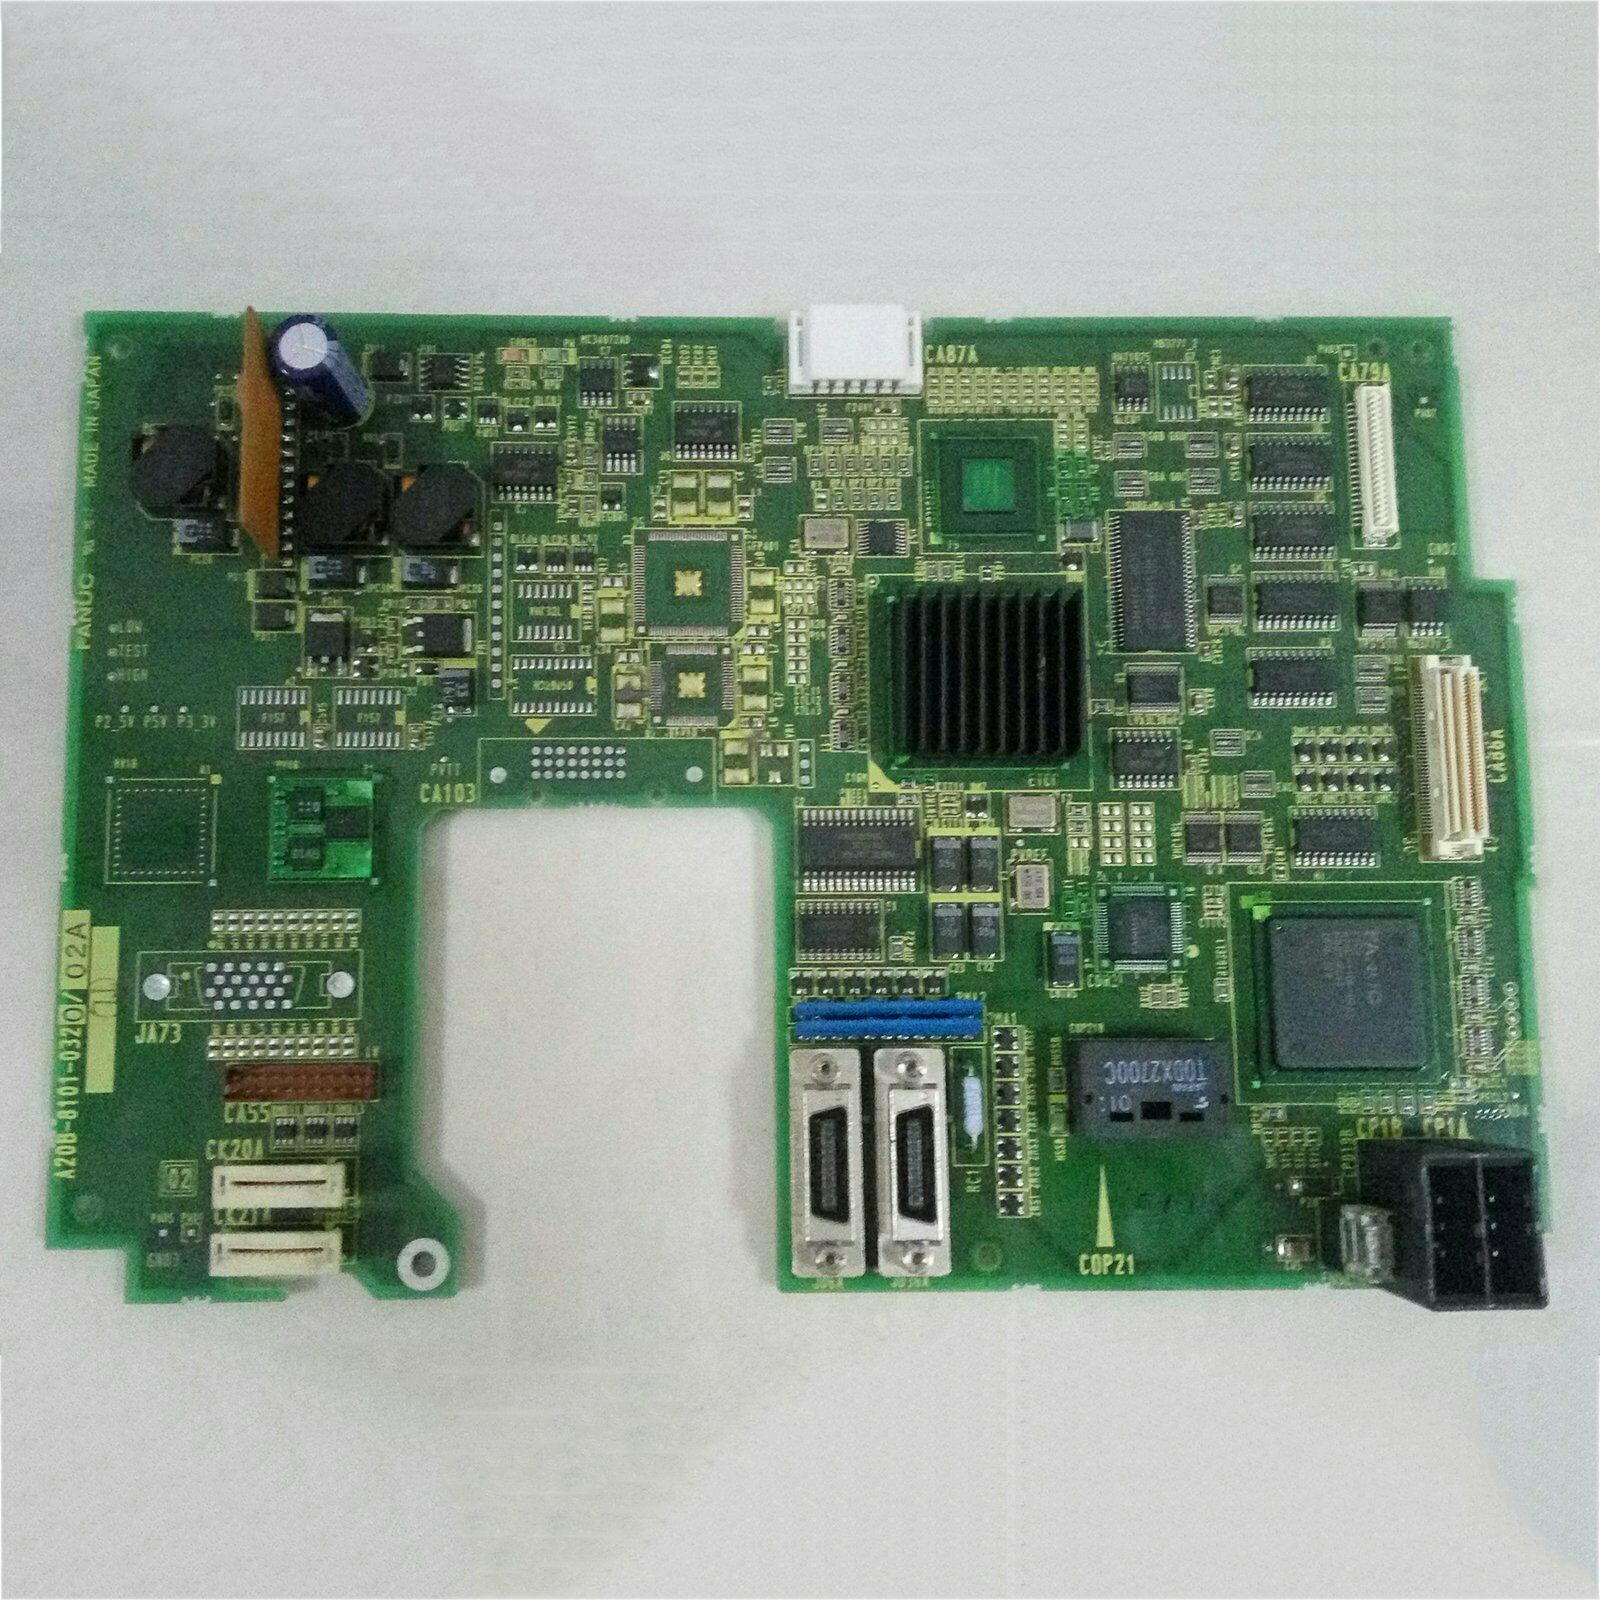 1PCS Used For Fanuc A20B-8101-0320 System Board Tested in Good Condition#QW